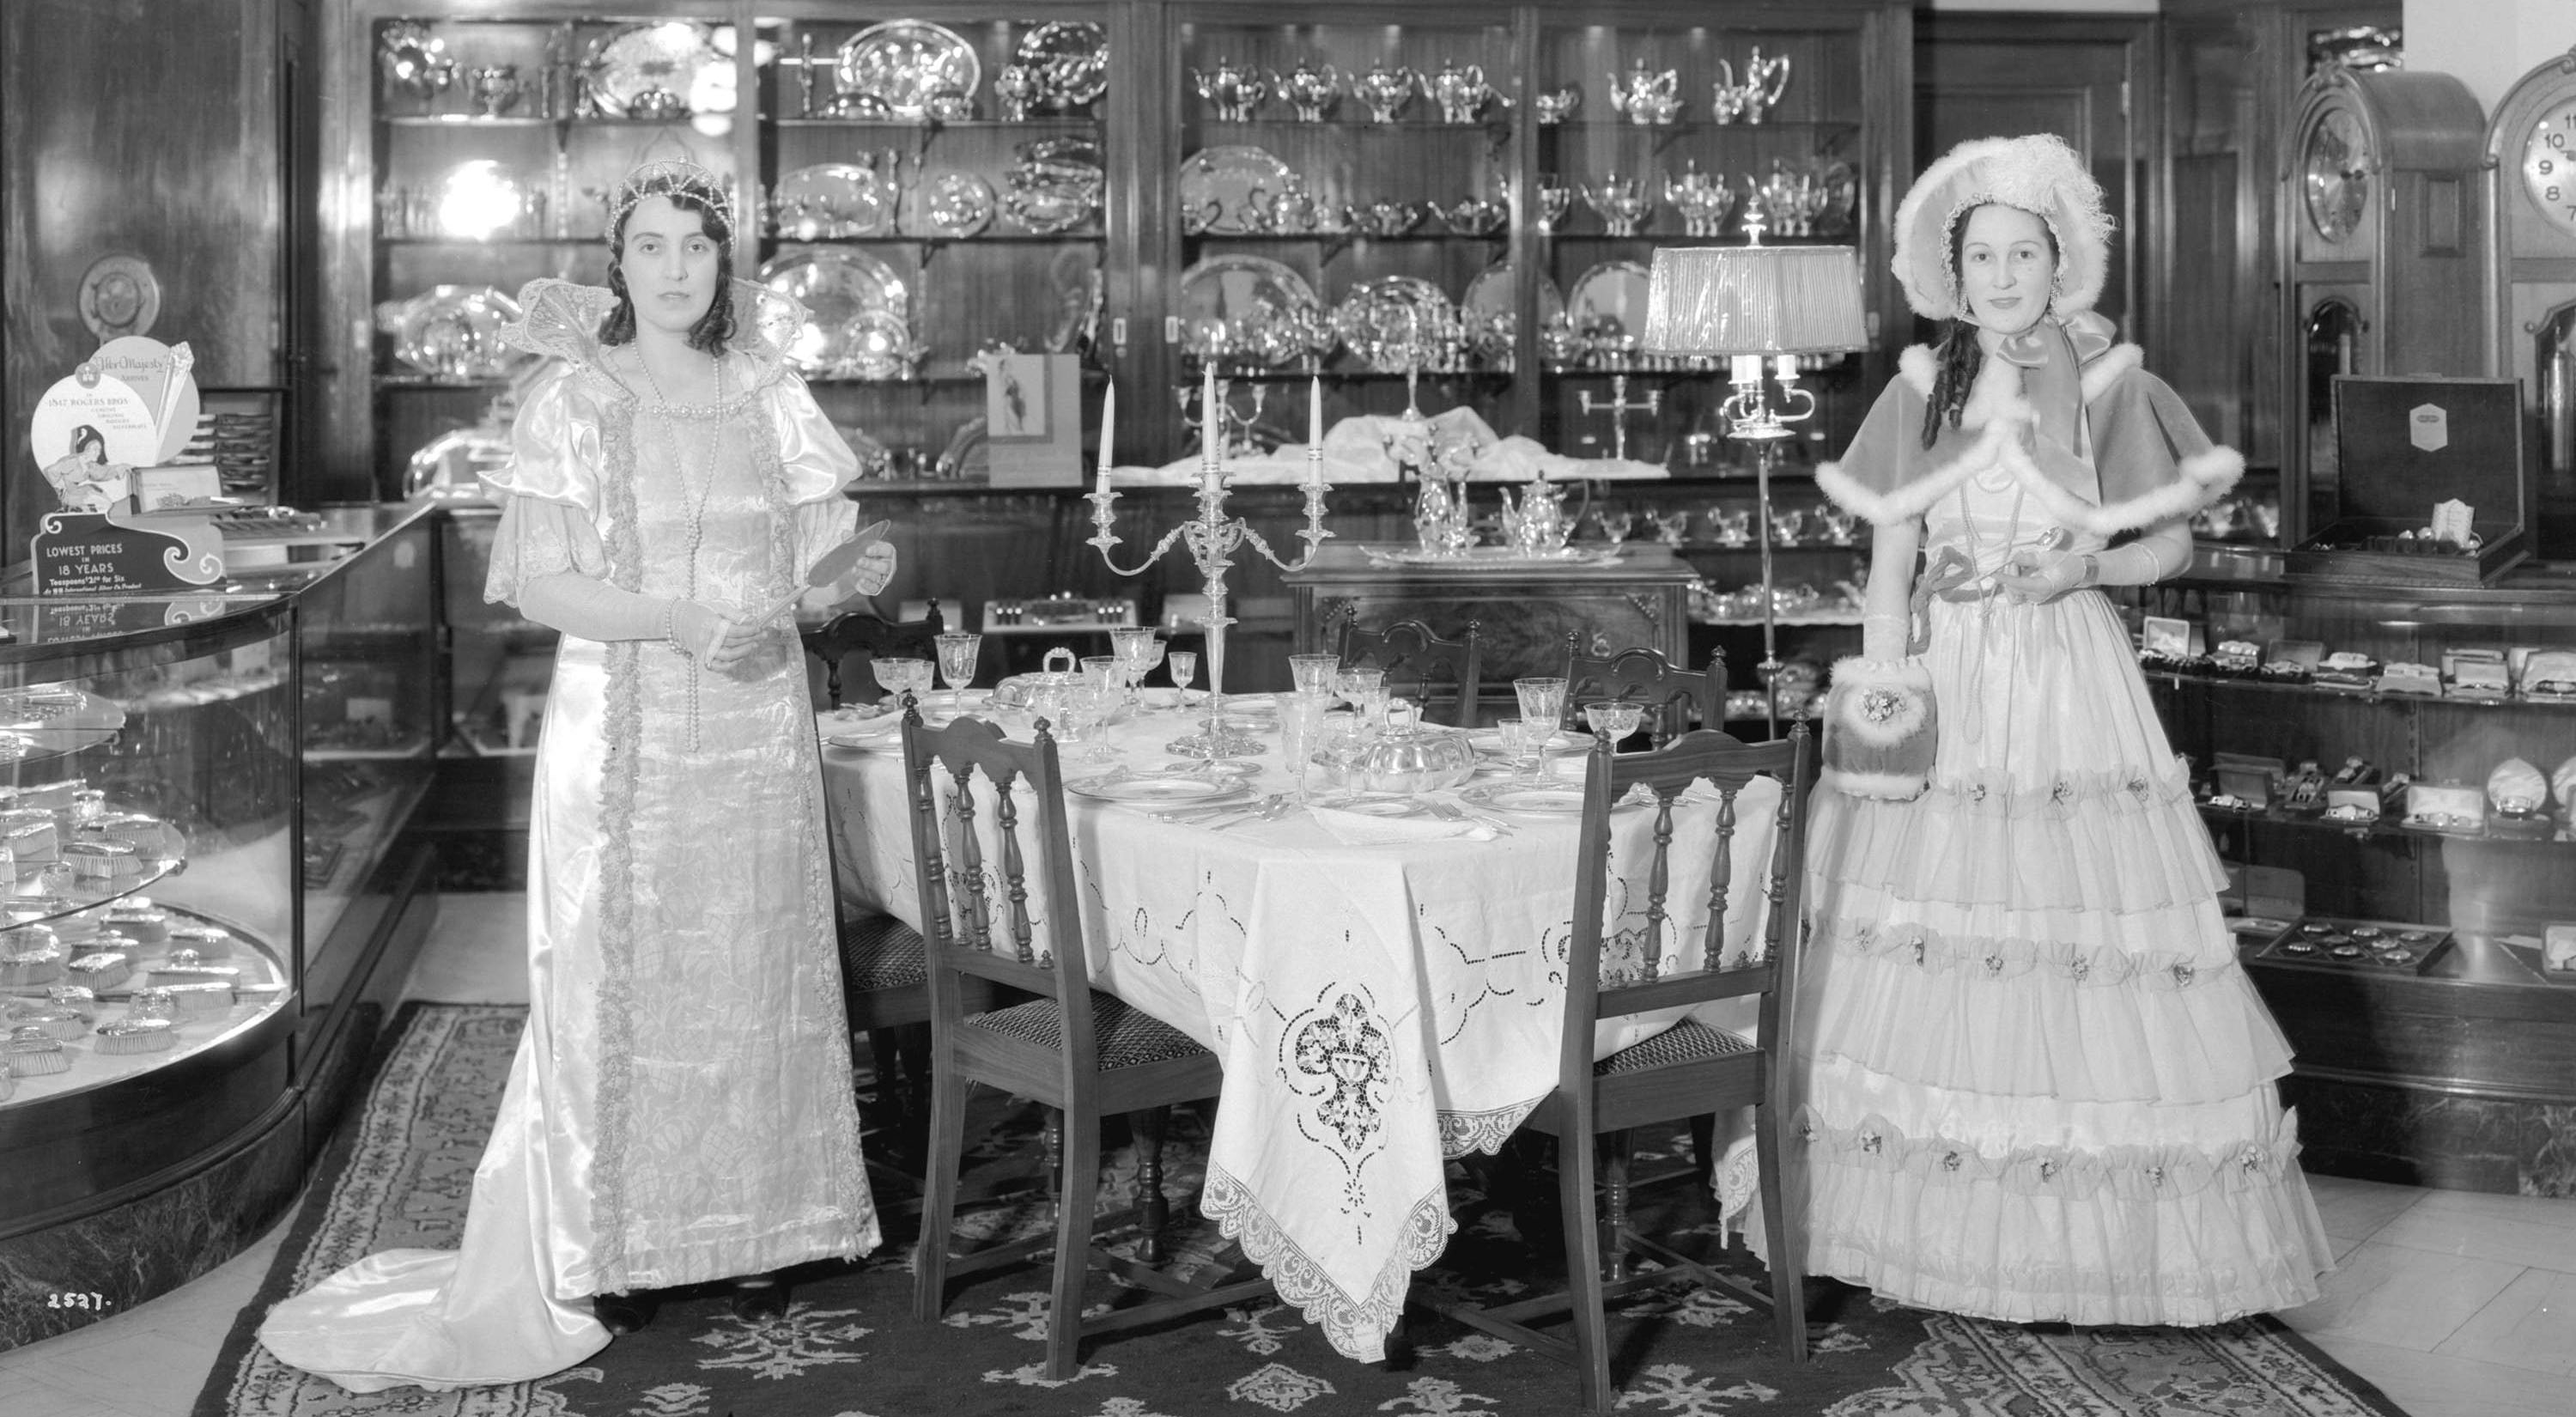 Models in period costumes display community plate in the china and silverware department at hudsons bay in 1932 stuart thomson hbc feature